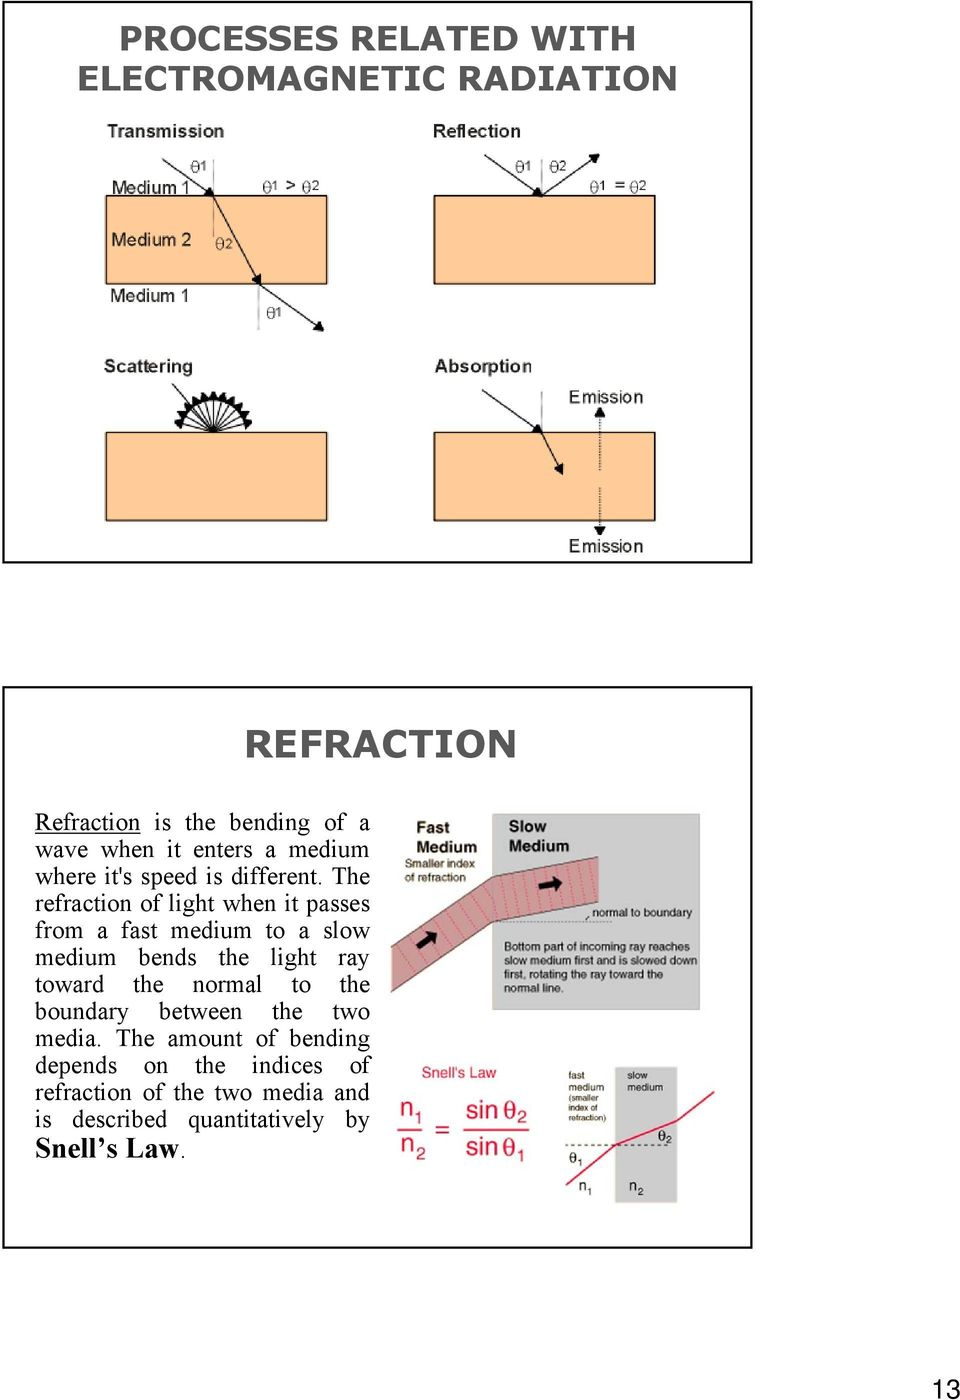 The refraction of light when it passes from a fast medium to a slow medium bends the light ray toward the